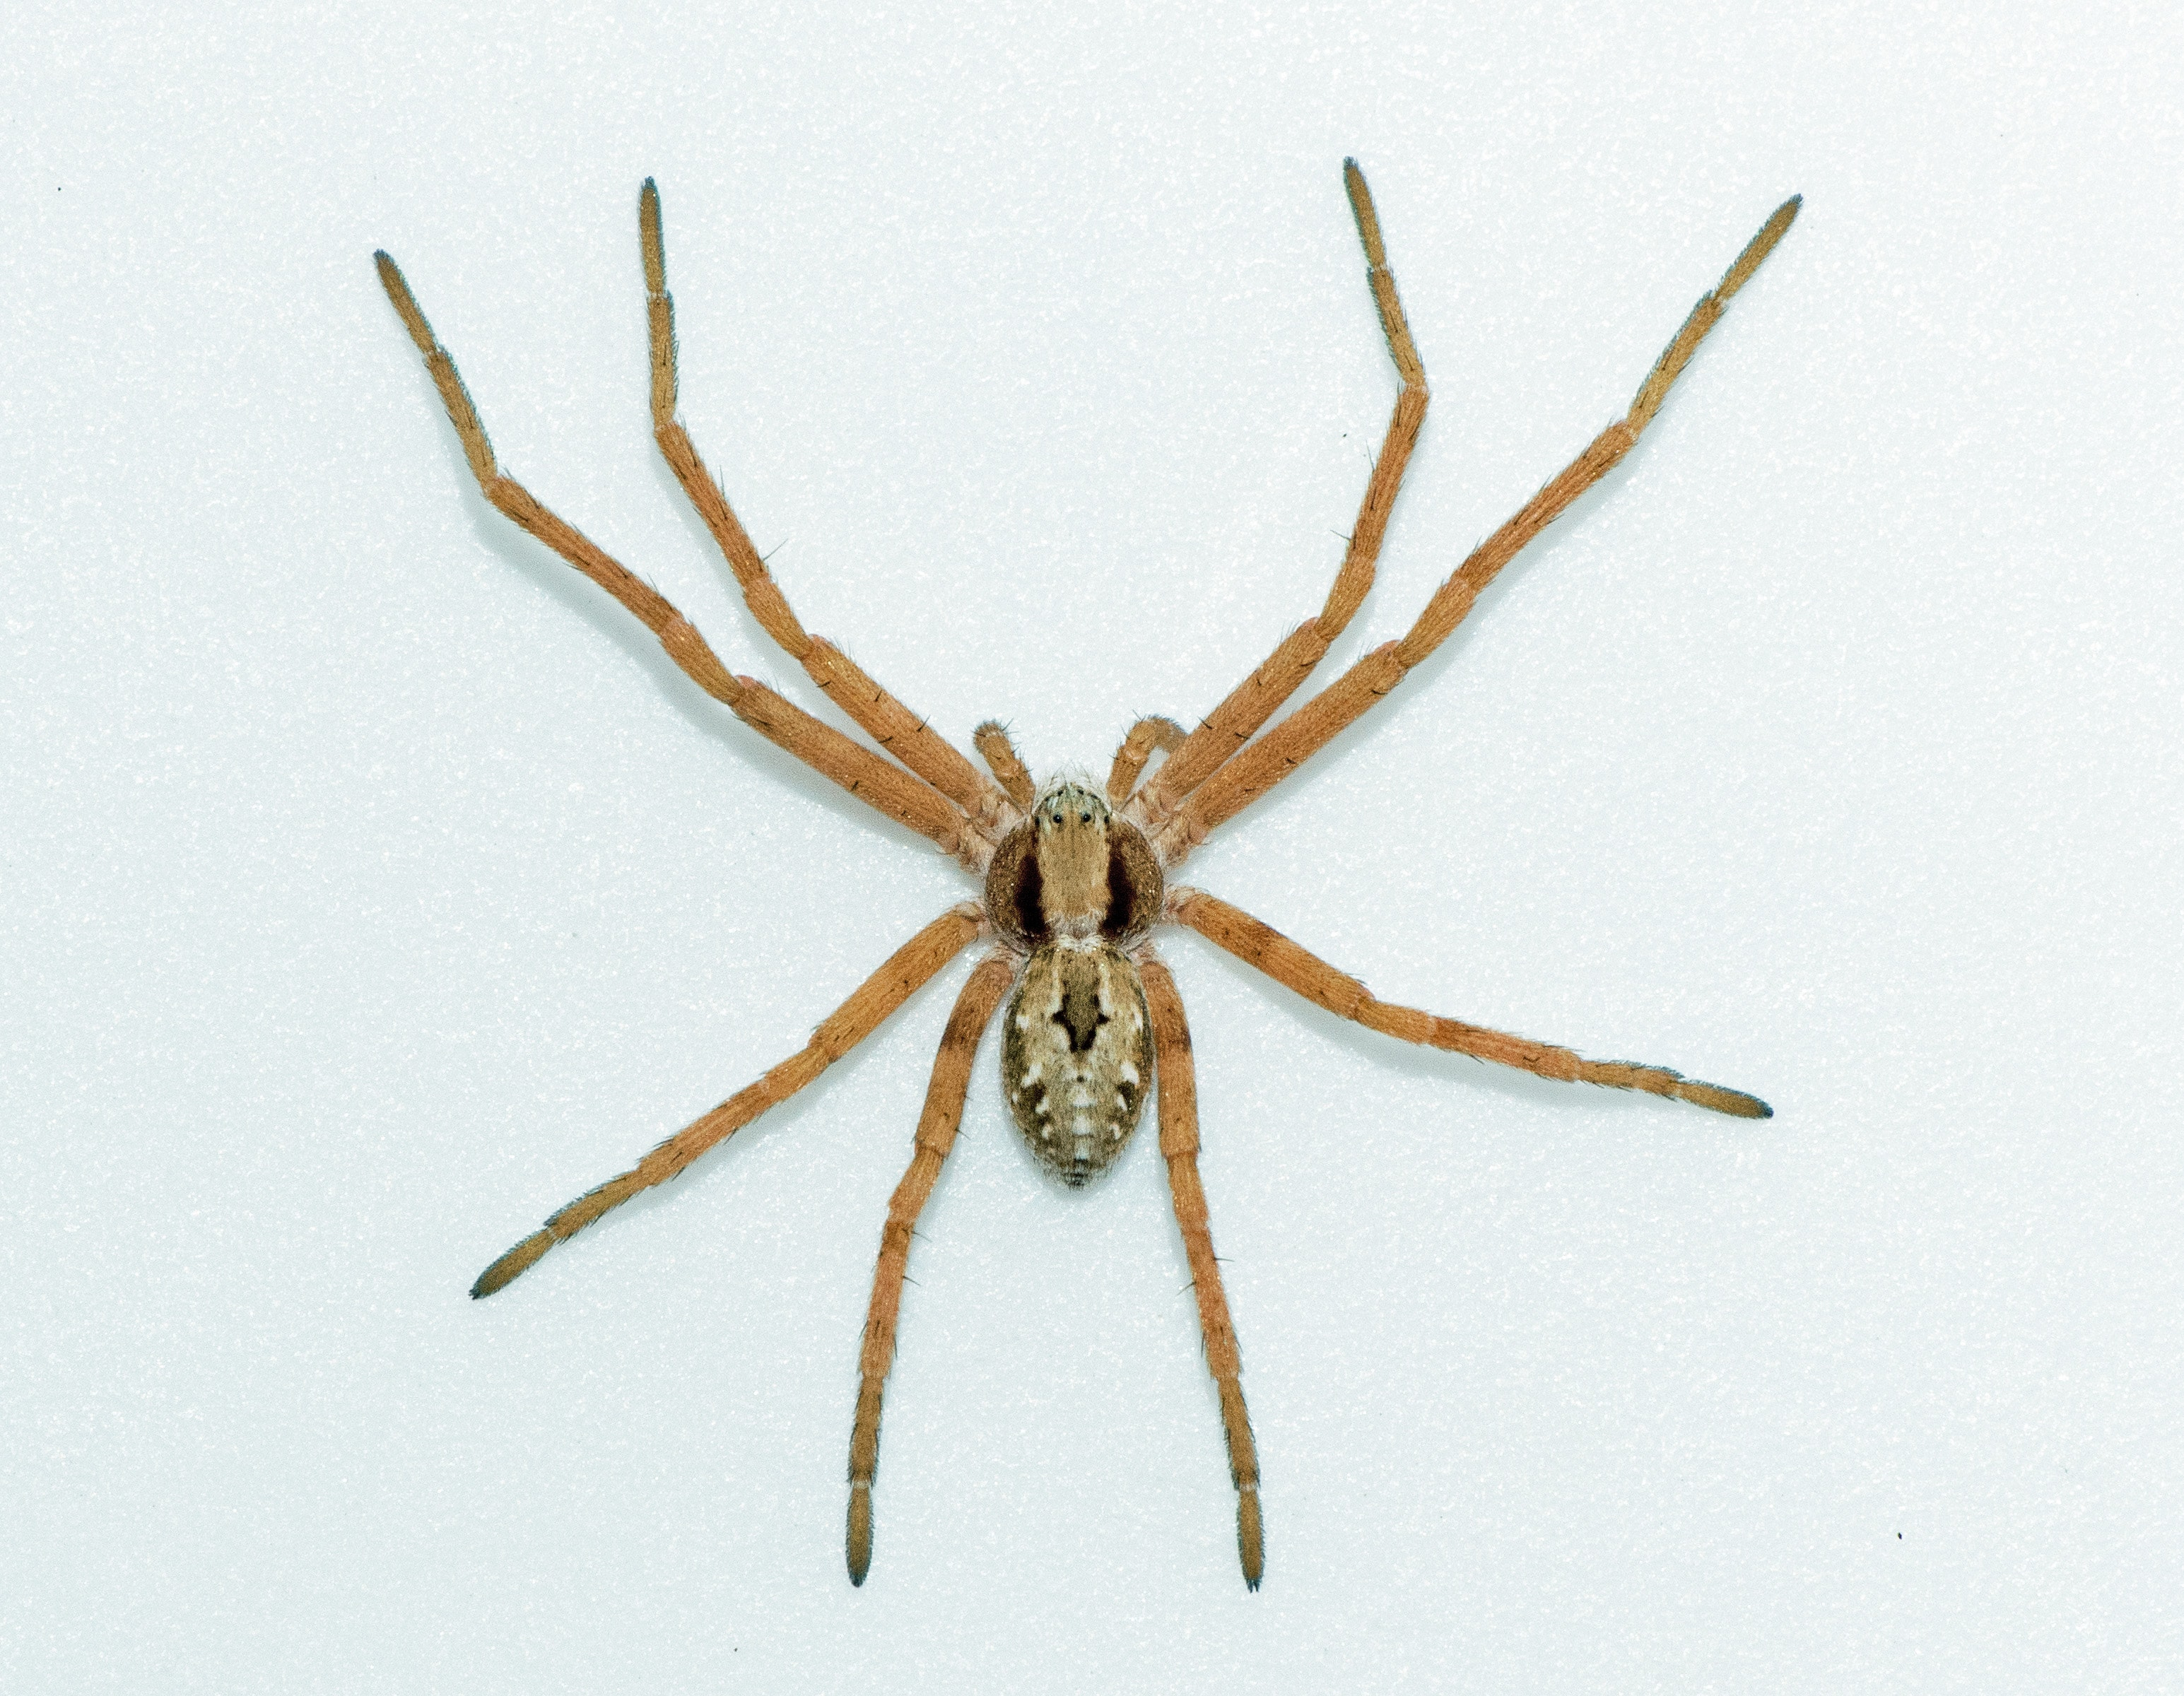 Featured spider picture of Thanatus vulgaris (Running Crab Spider)